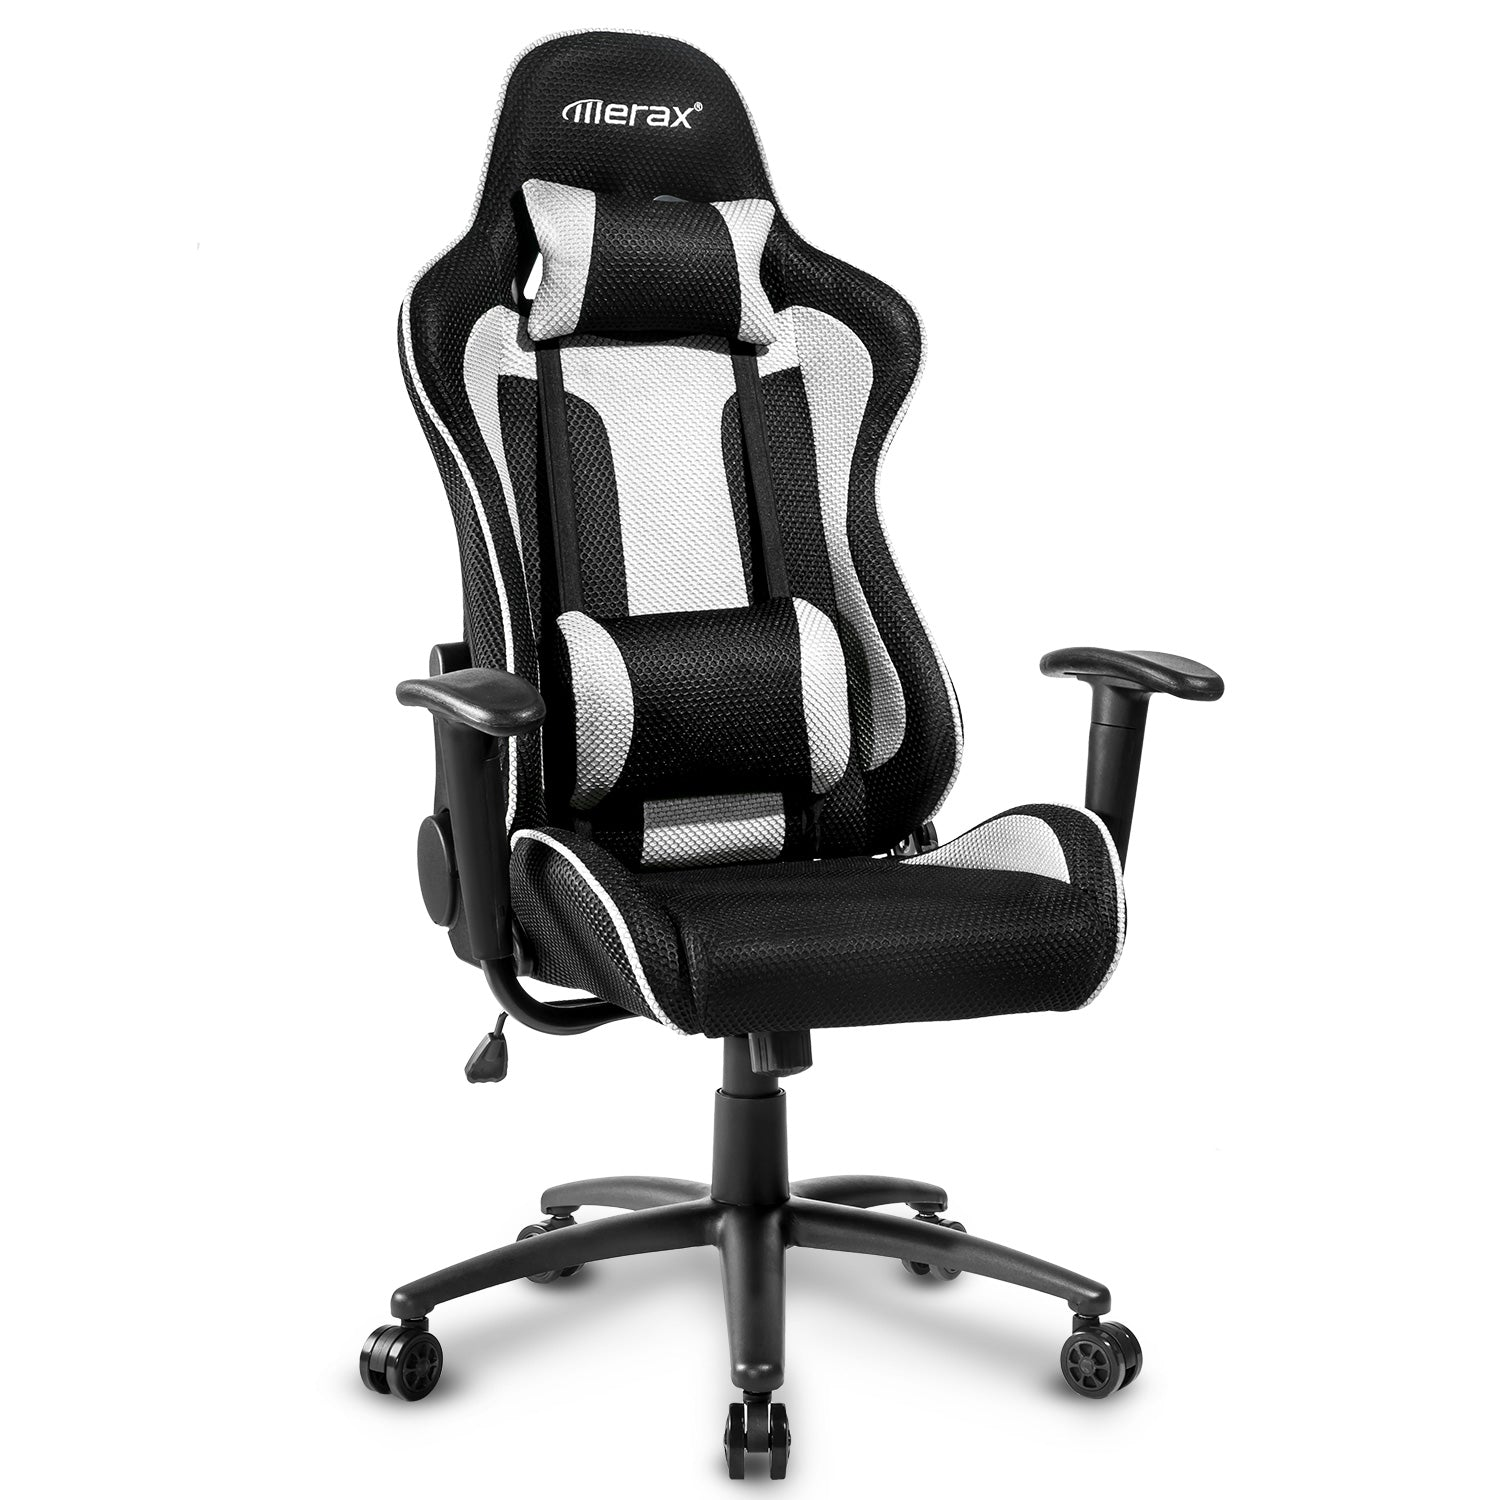 CAMANDE Racing Gaming Chair Executive Swivel Mesh Computer Office Chair Metal Frame(White)